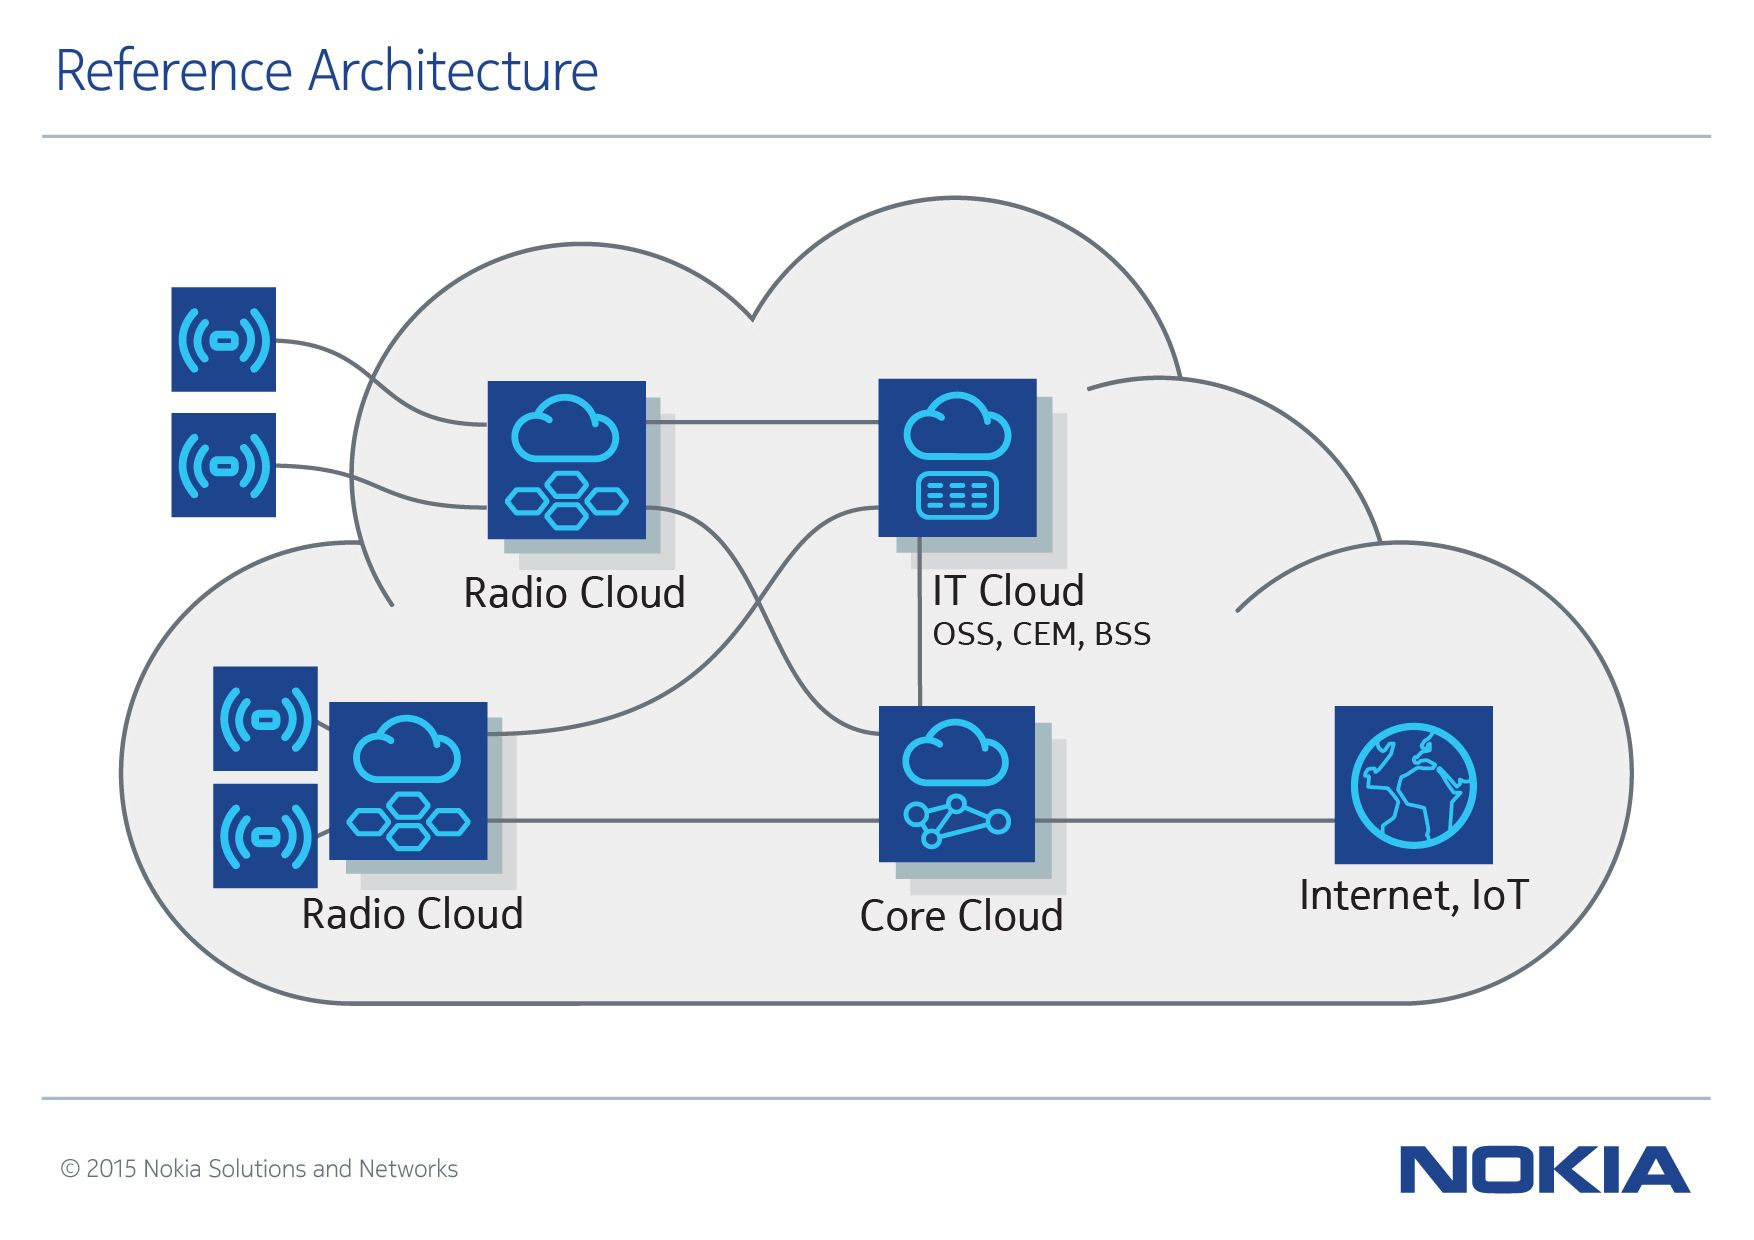 Nokia Networks Infographic Of Reference Architecture For Software Telco Cloud